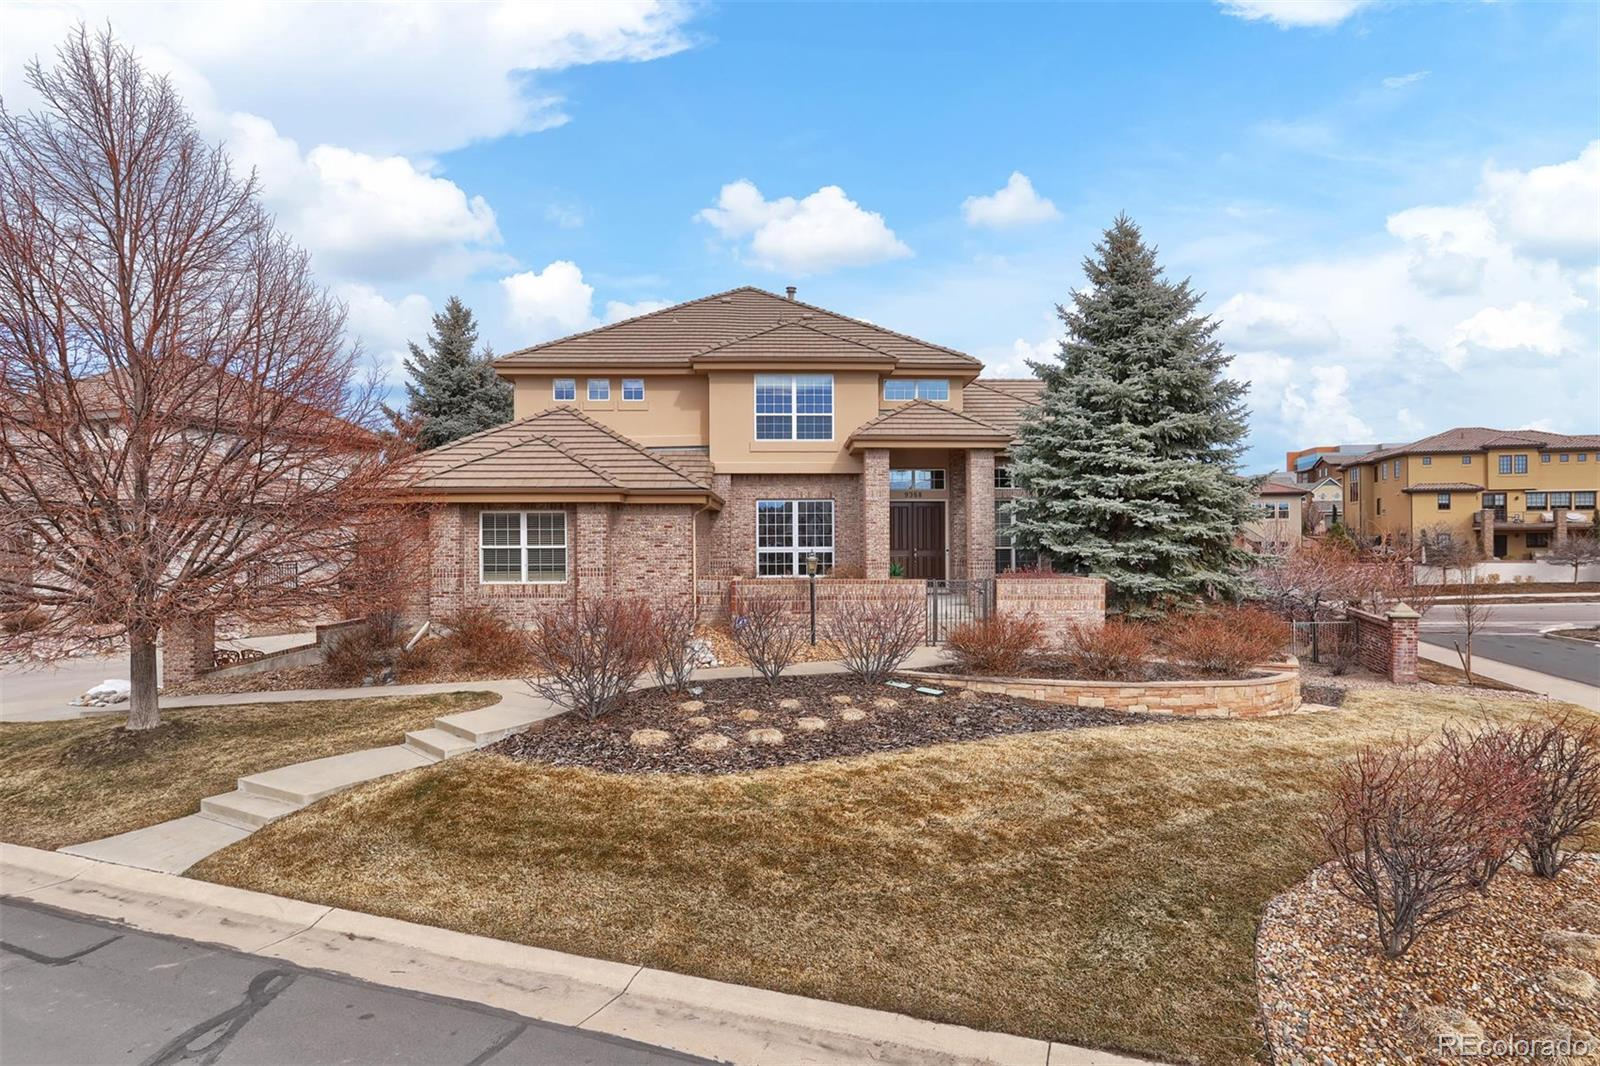 9368 S Silent Hills Drive, Lone Tree, CO 80124 - #: 3391208